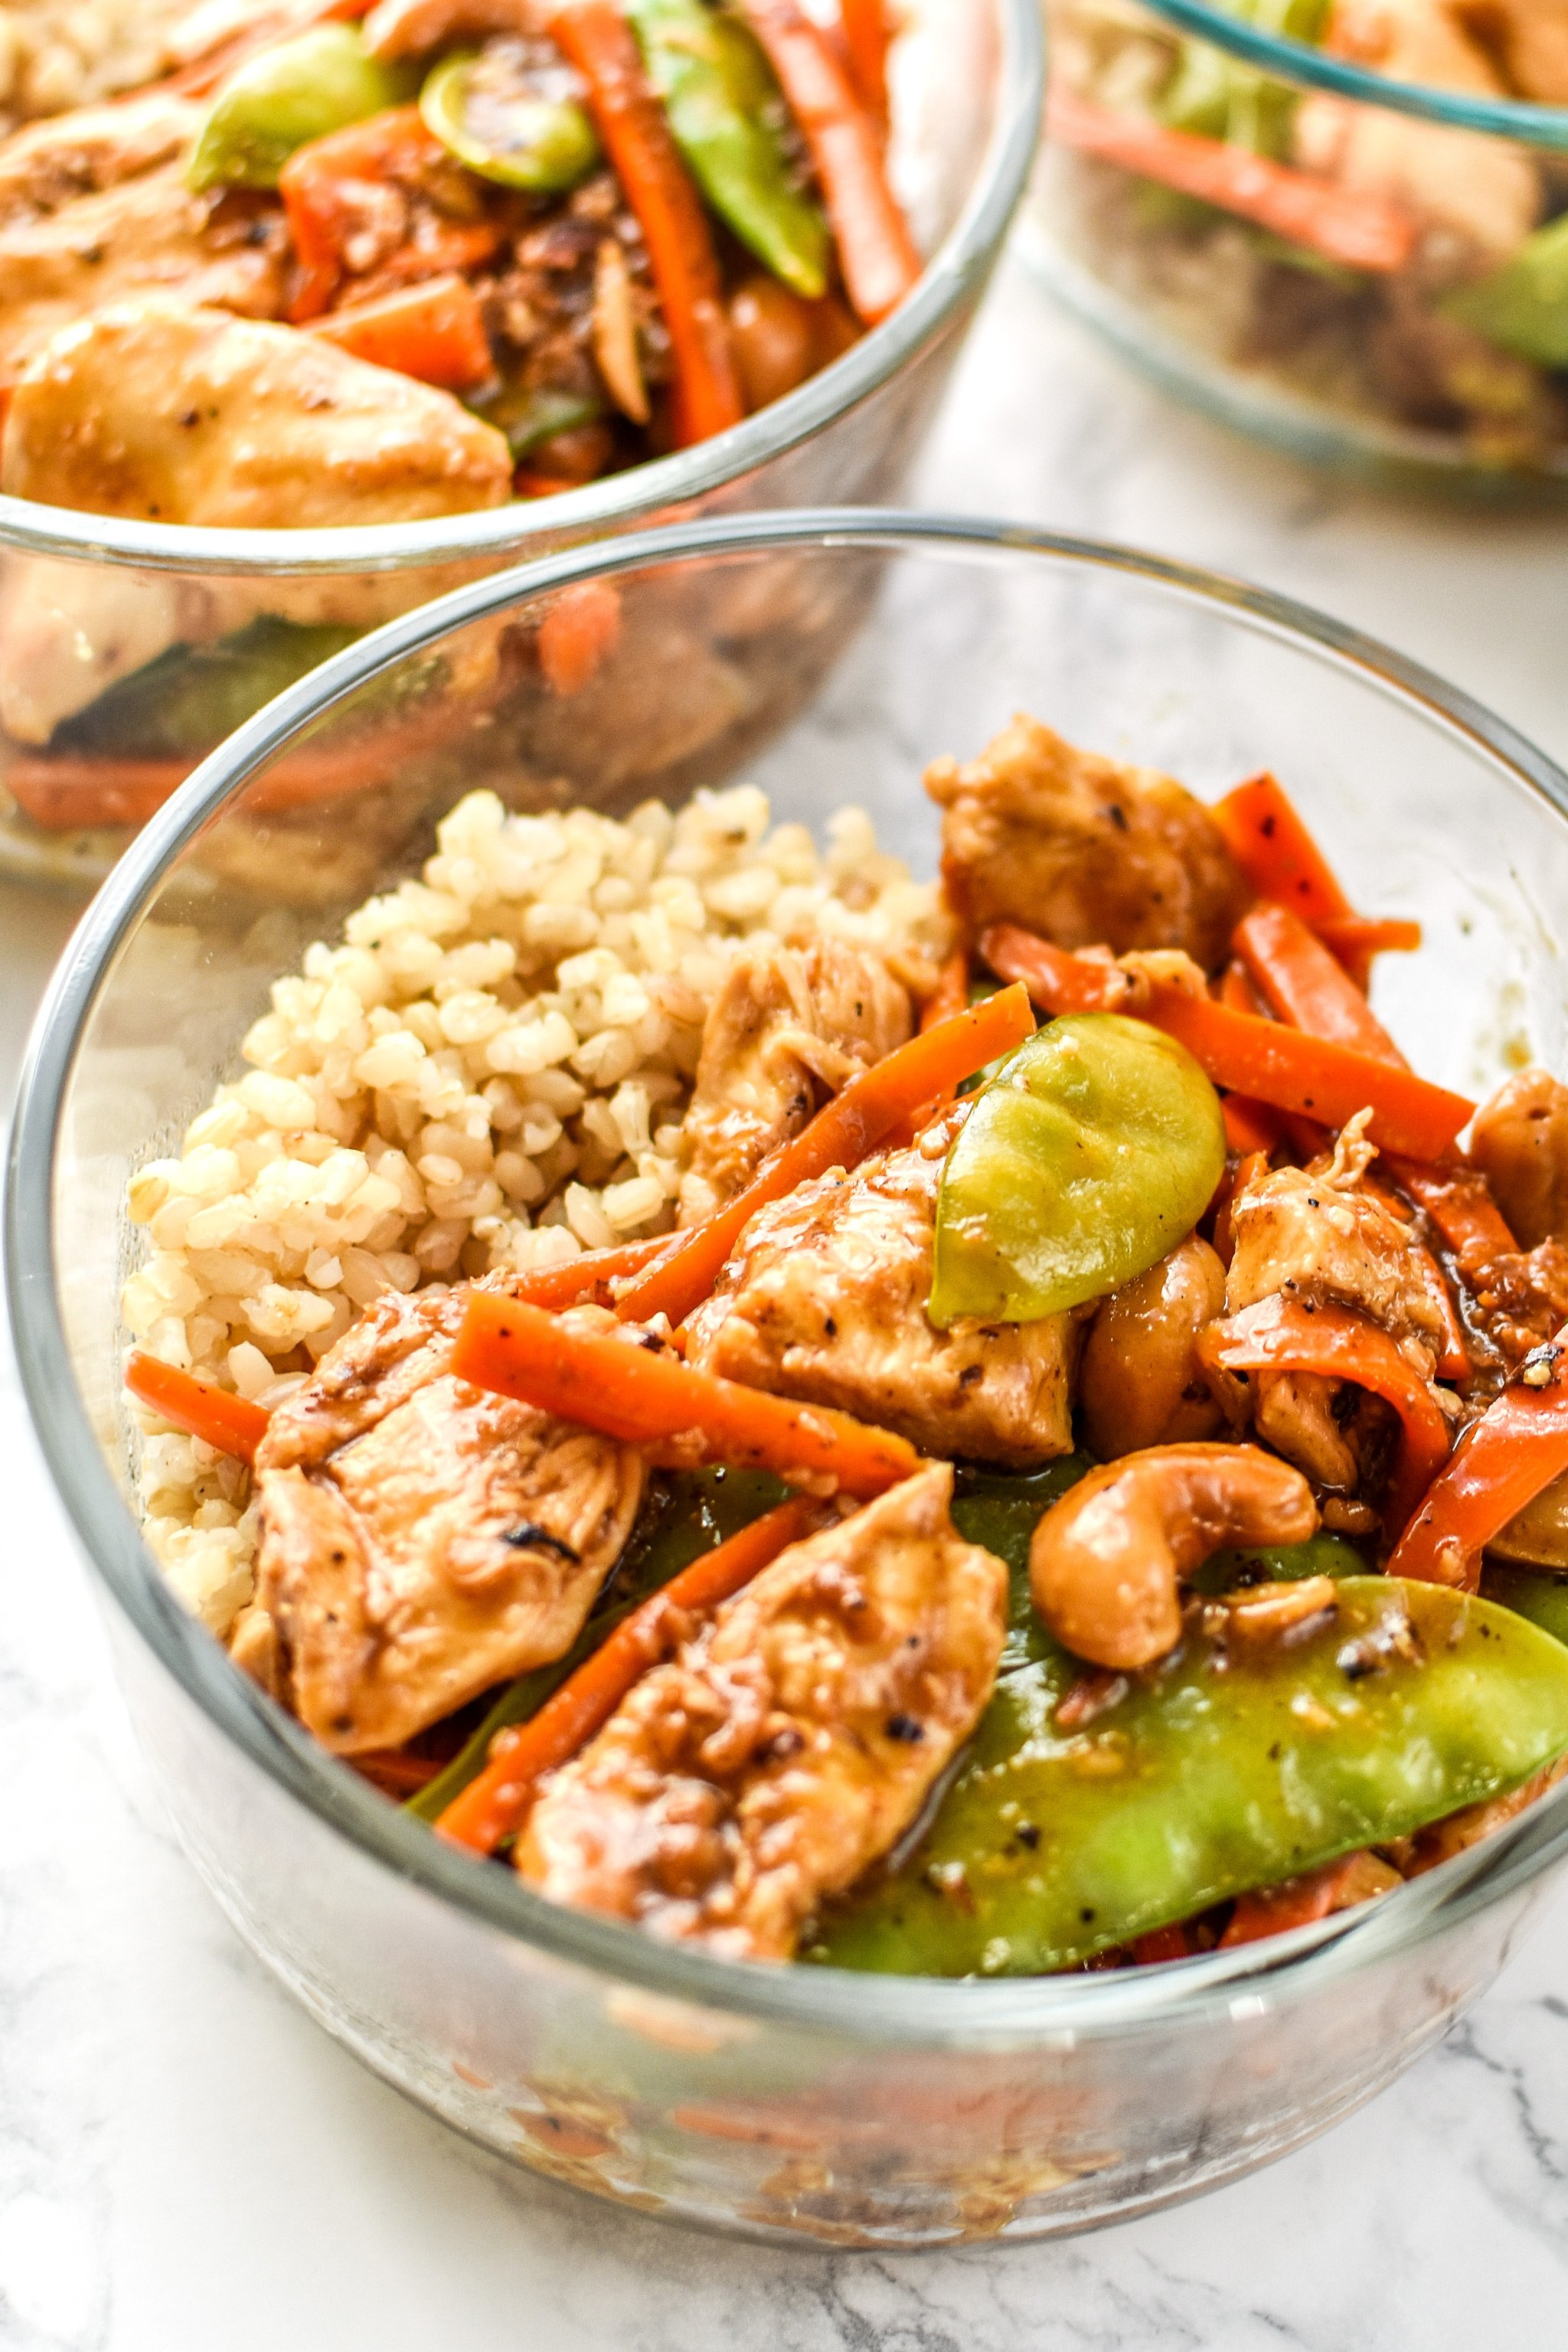 Cashew chicken meal prep with carrots and snow peas.